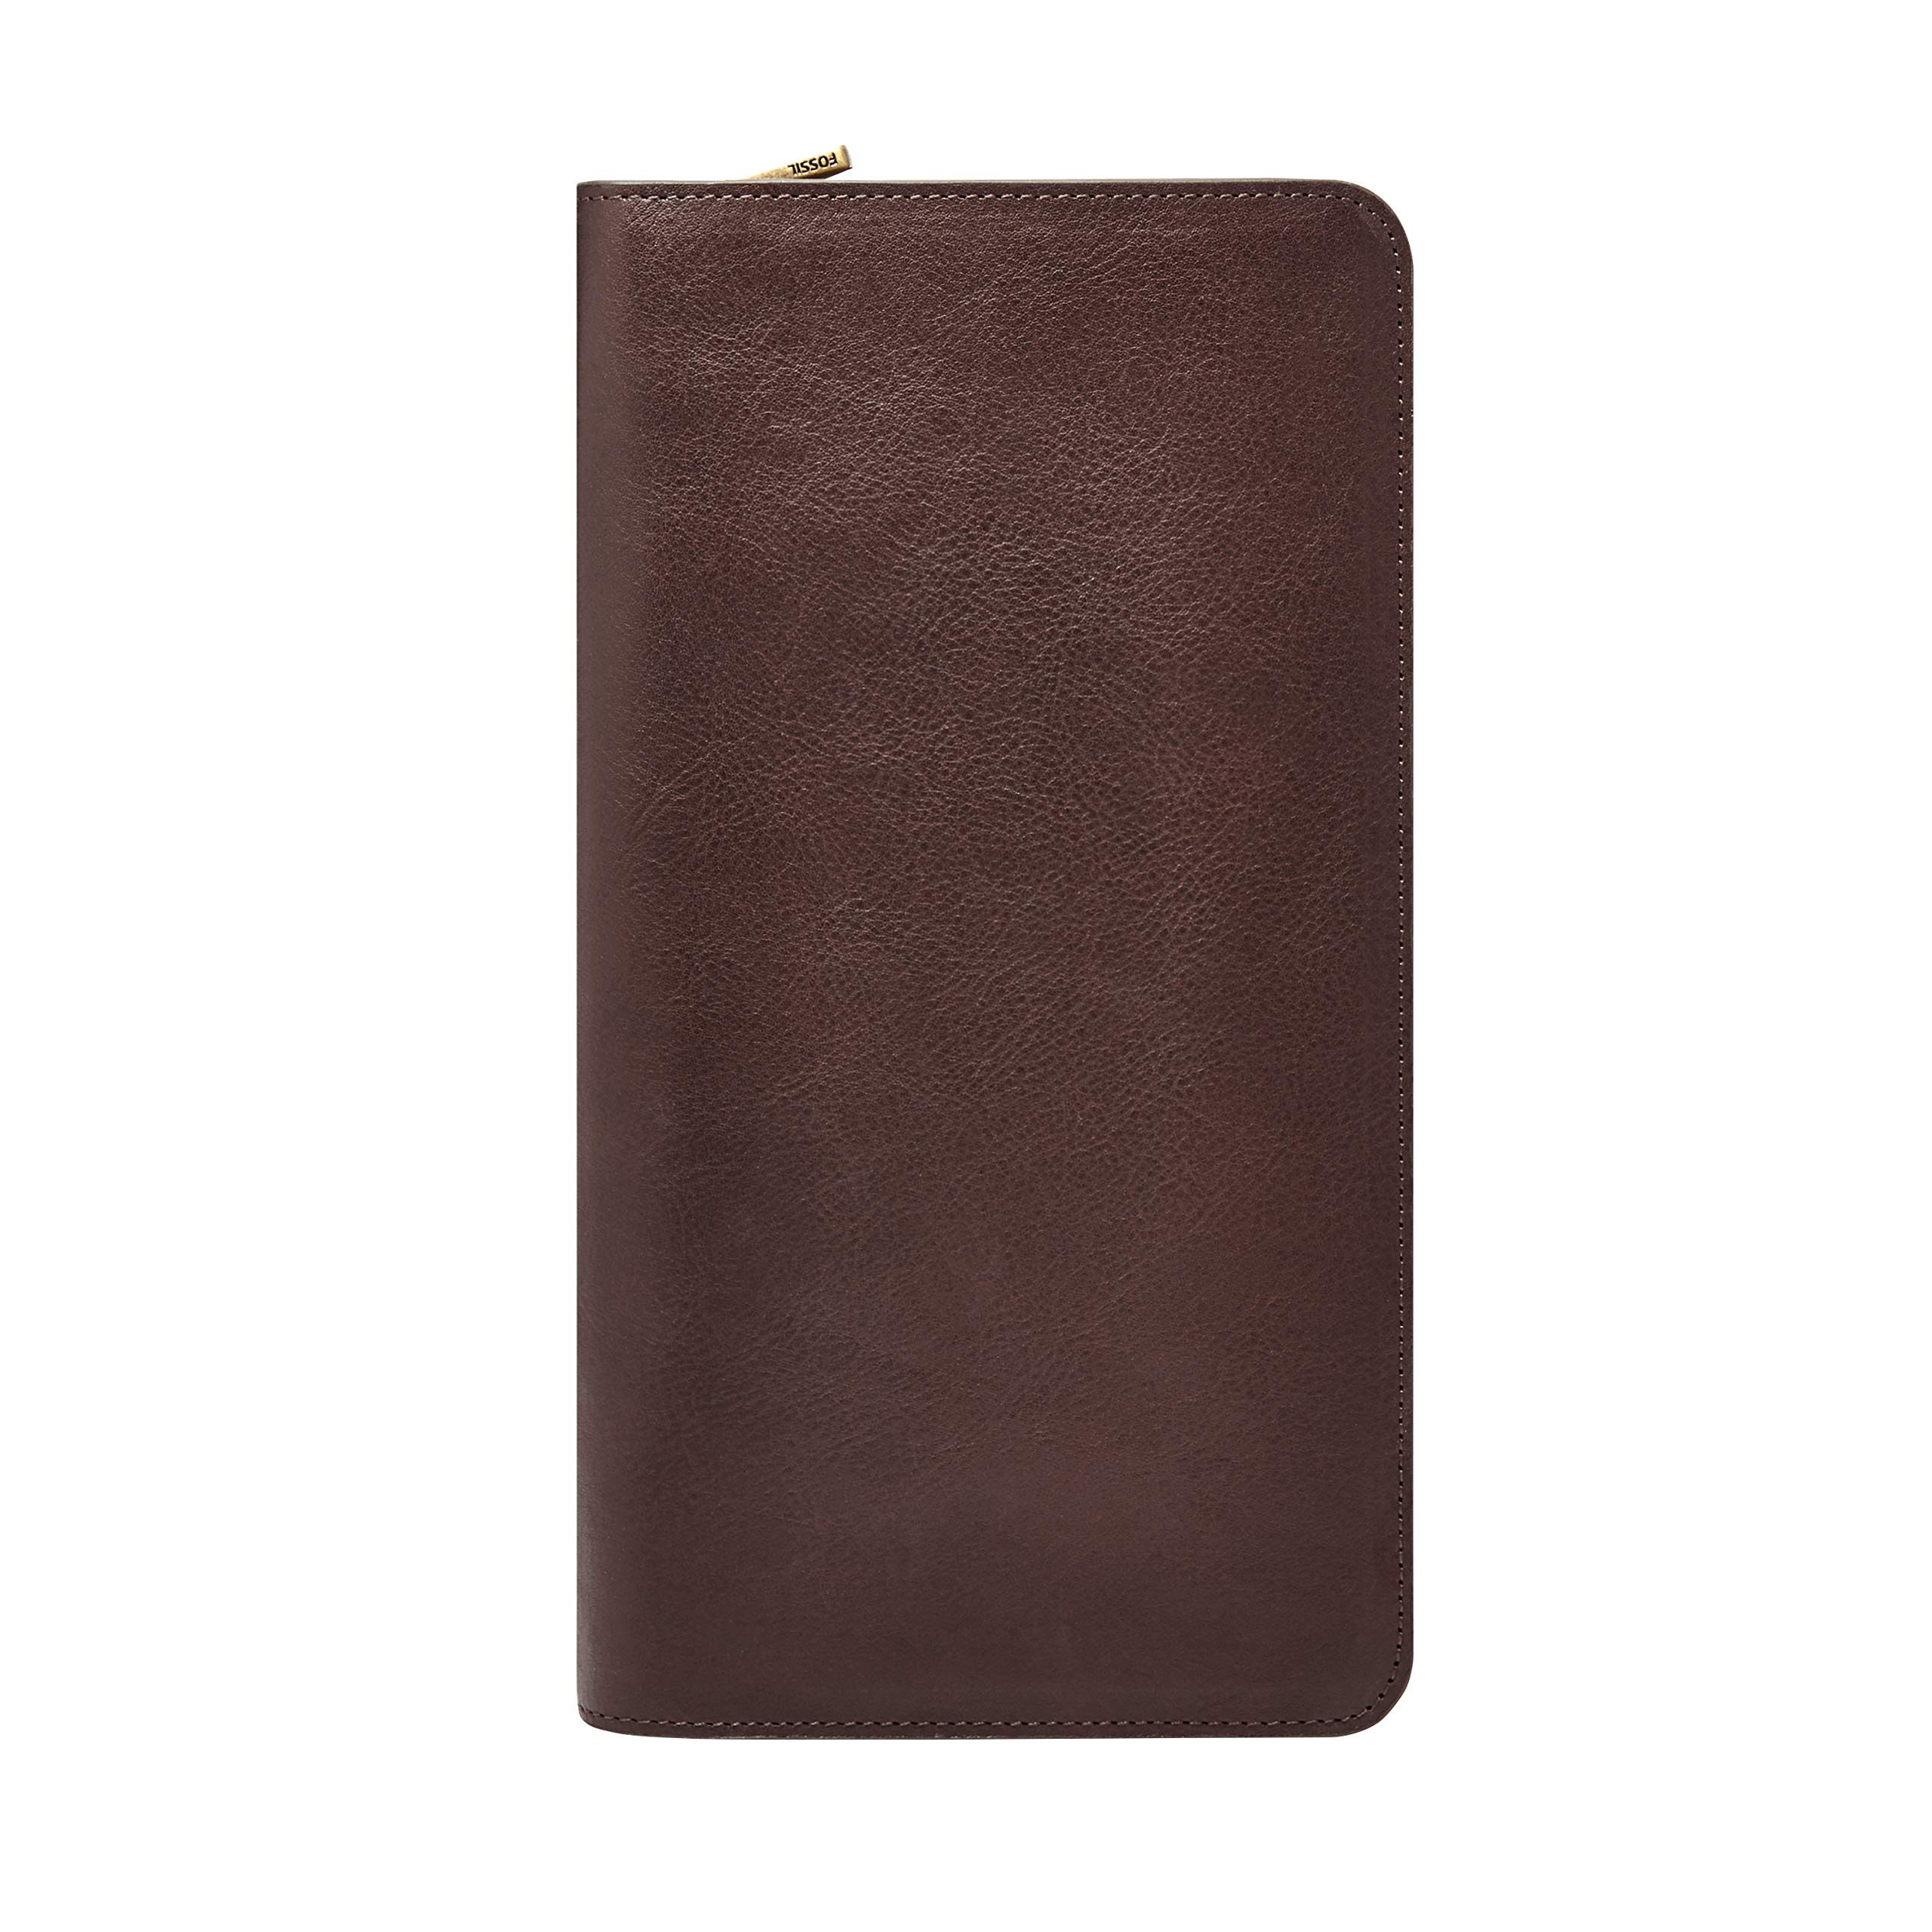 Fossil Leather Passport Case, Multi Zip Passport - Dark Brown by Fossil